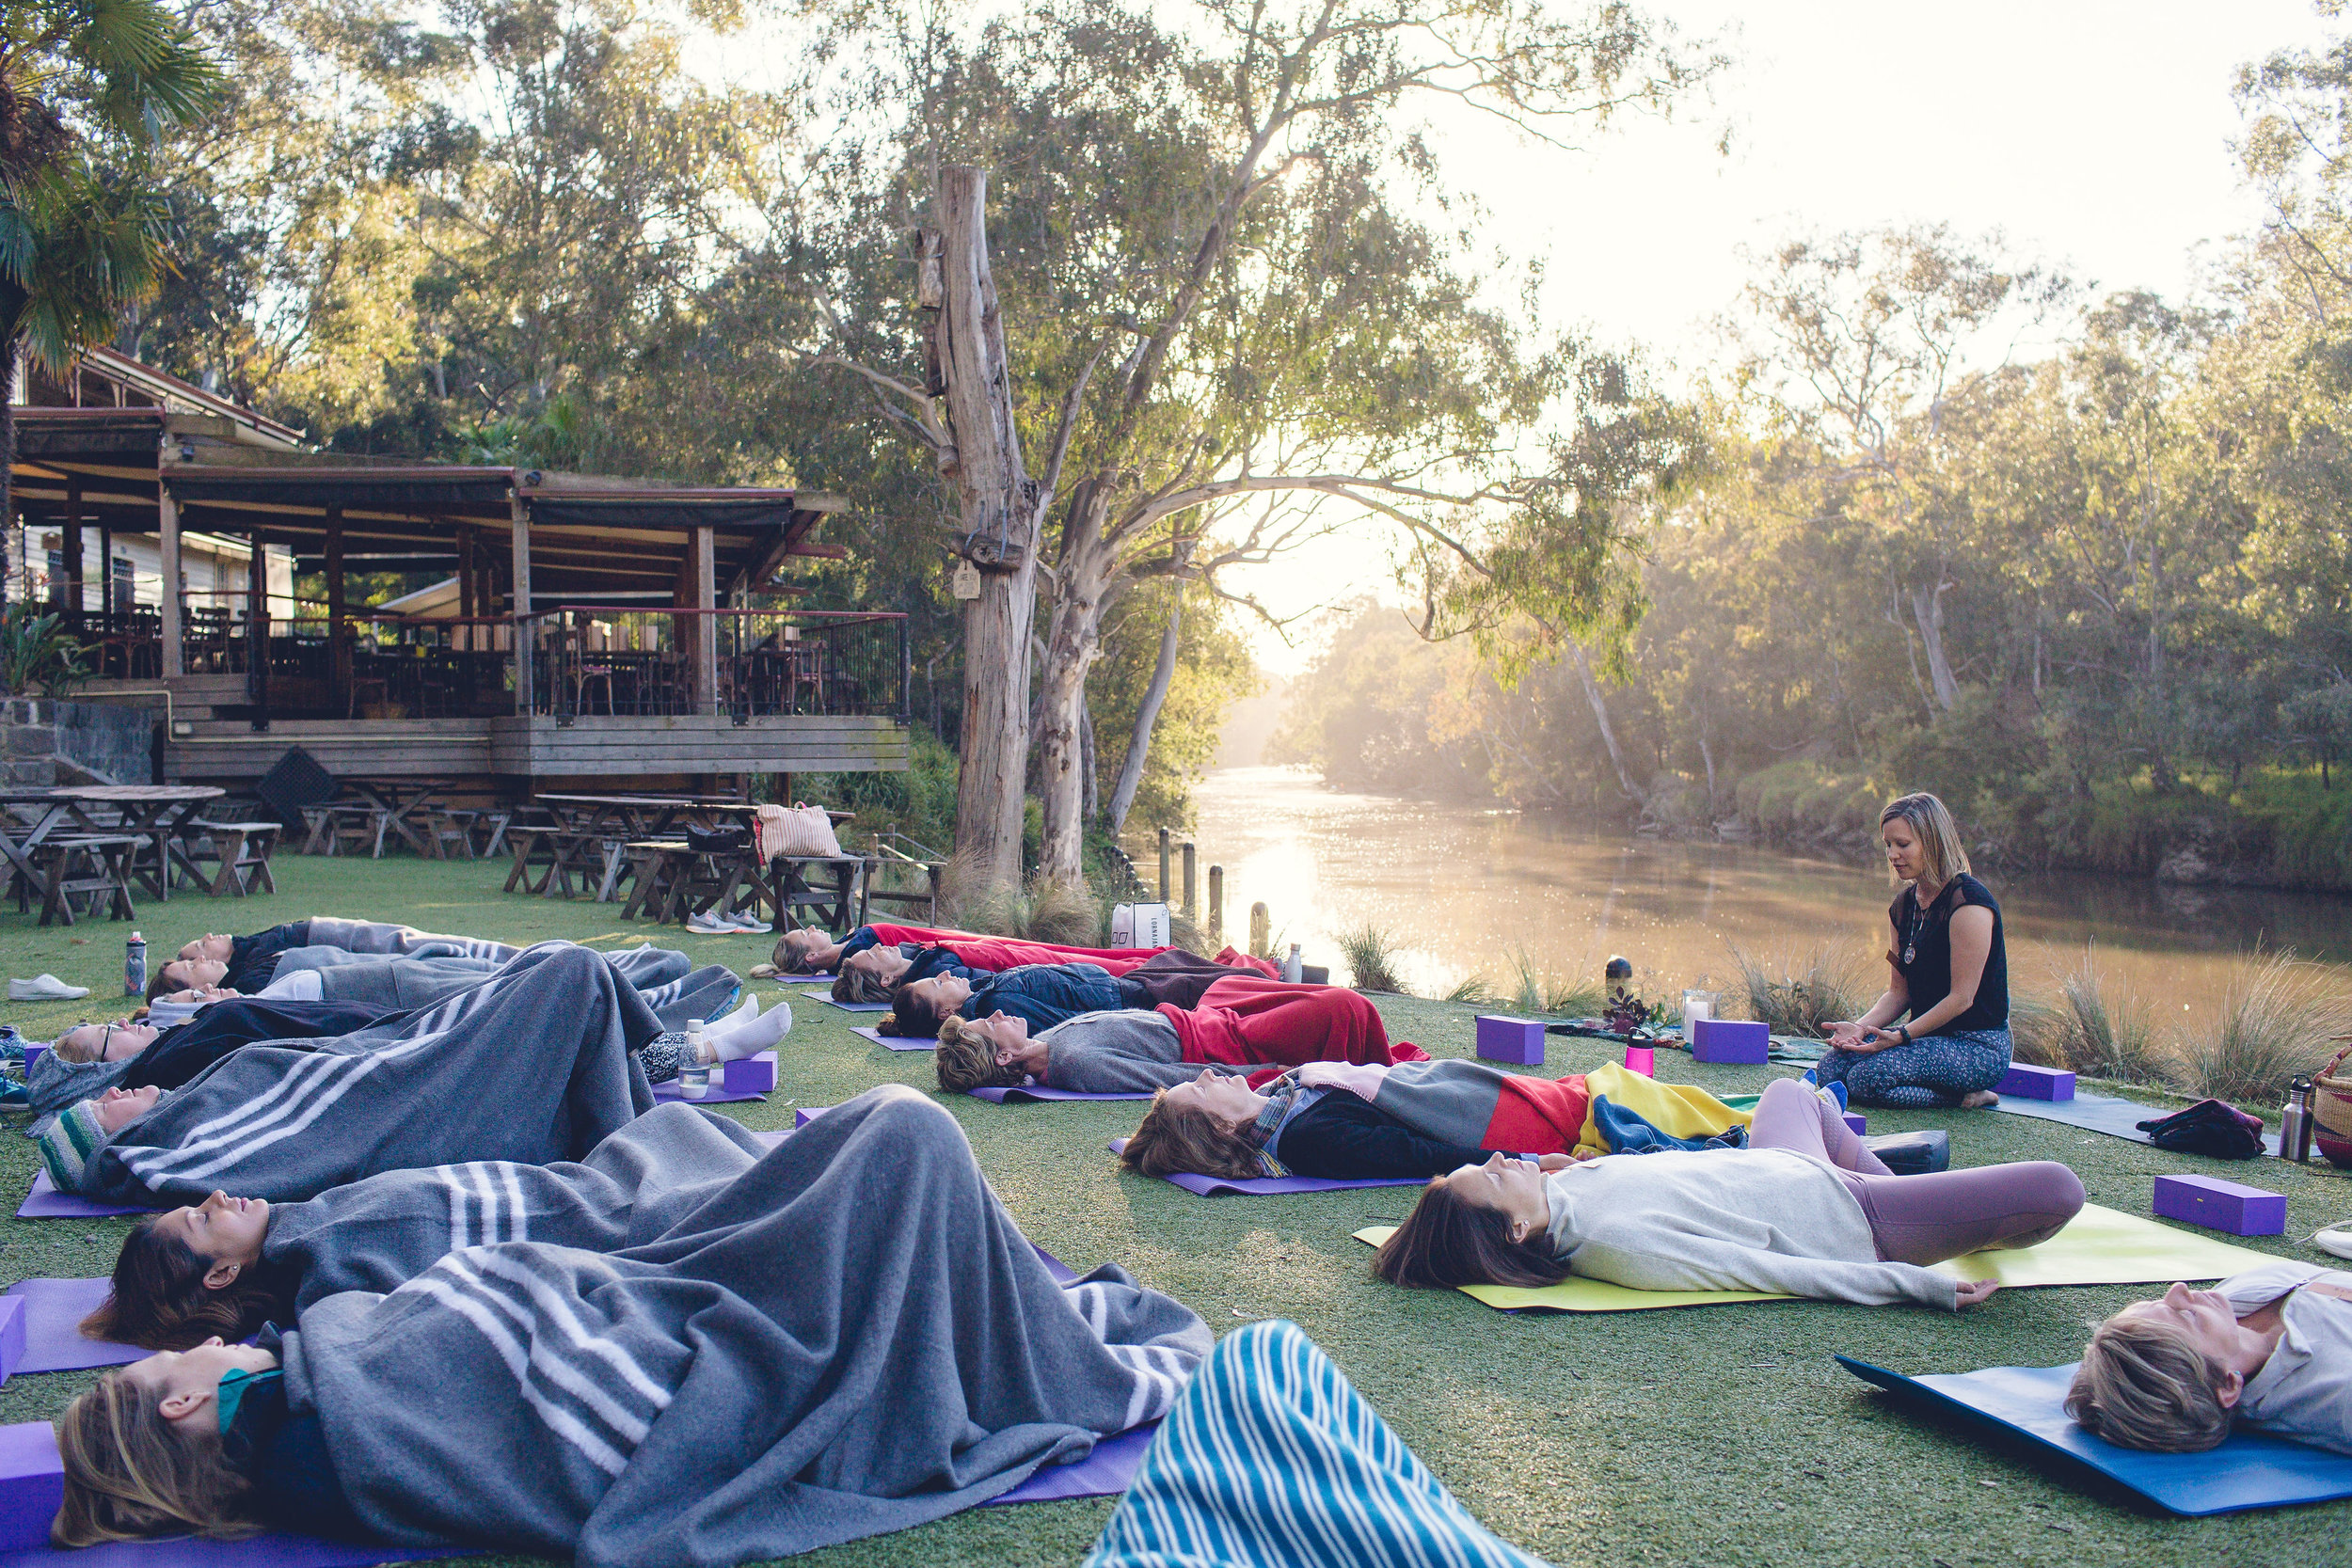 'A Morning Ritual' Hive Social event @  Fairfield Park Boathouse . We raised $1000 for  One Girl , an organisation helping to educate girls in Africa.